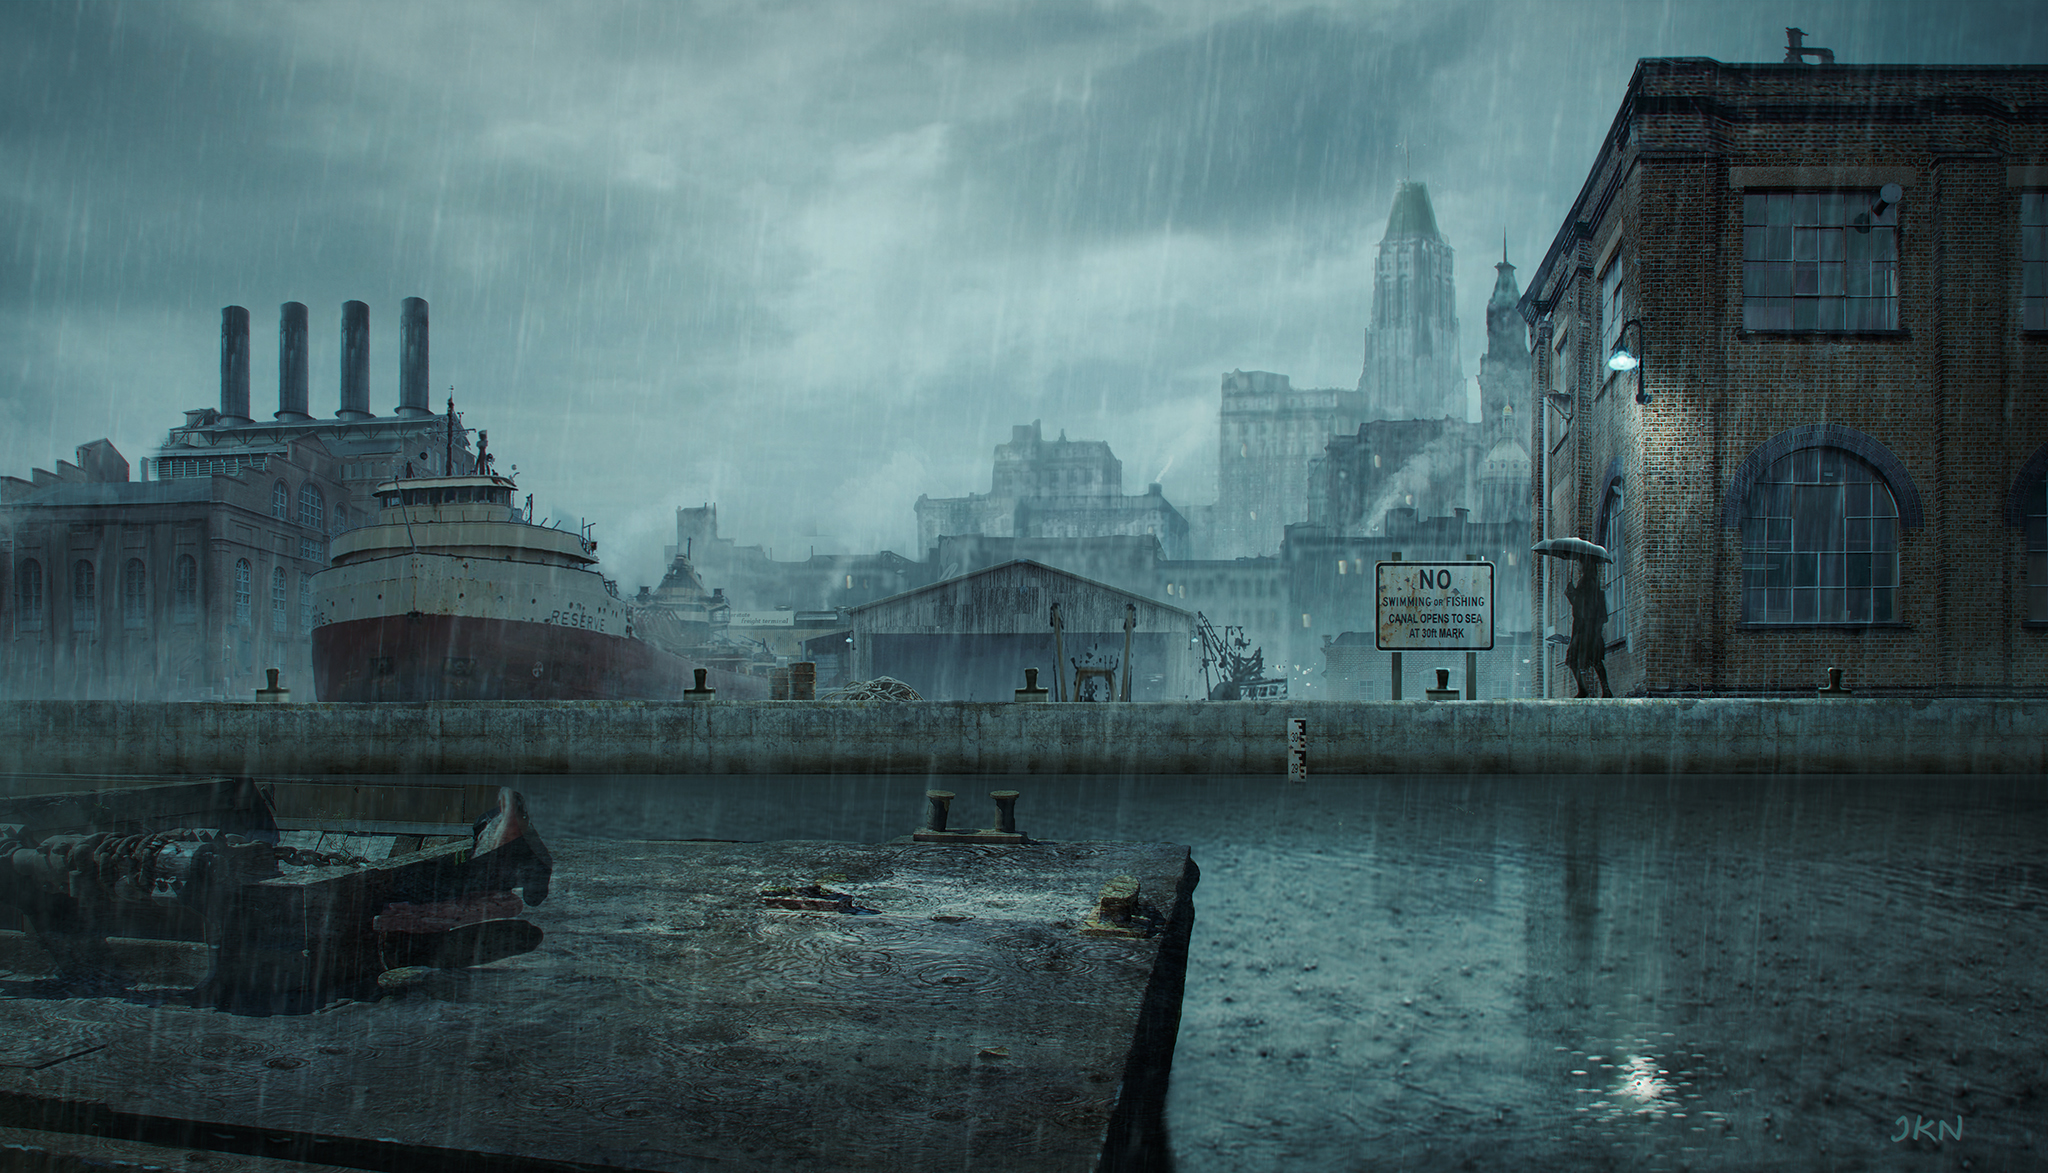 CANAL_Lookingmiddlecity_concept_v001.jpg